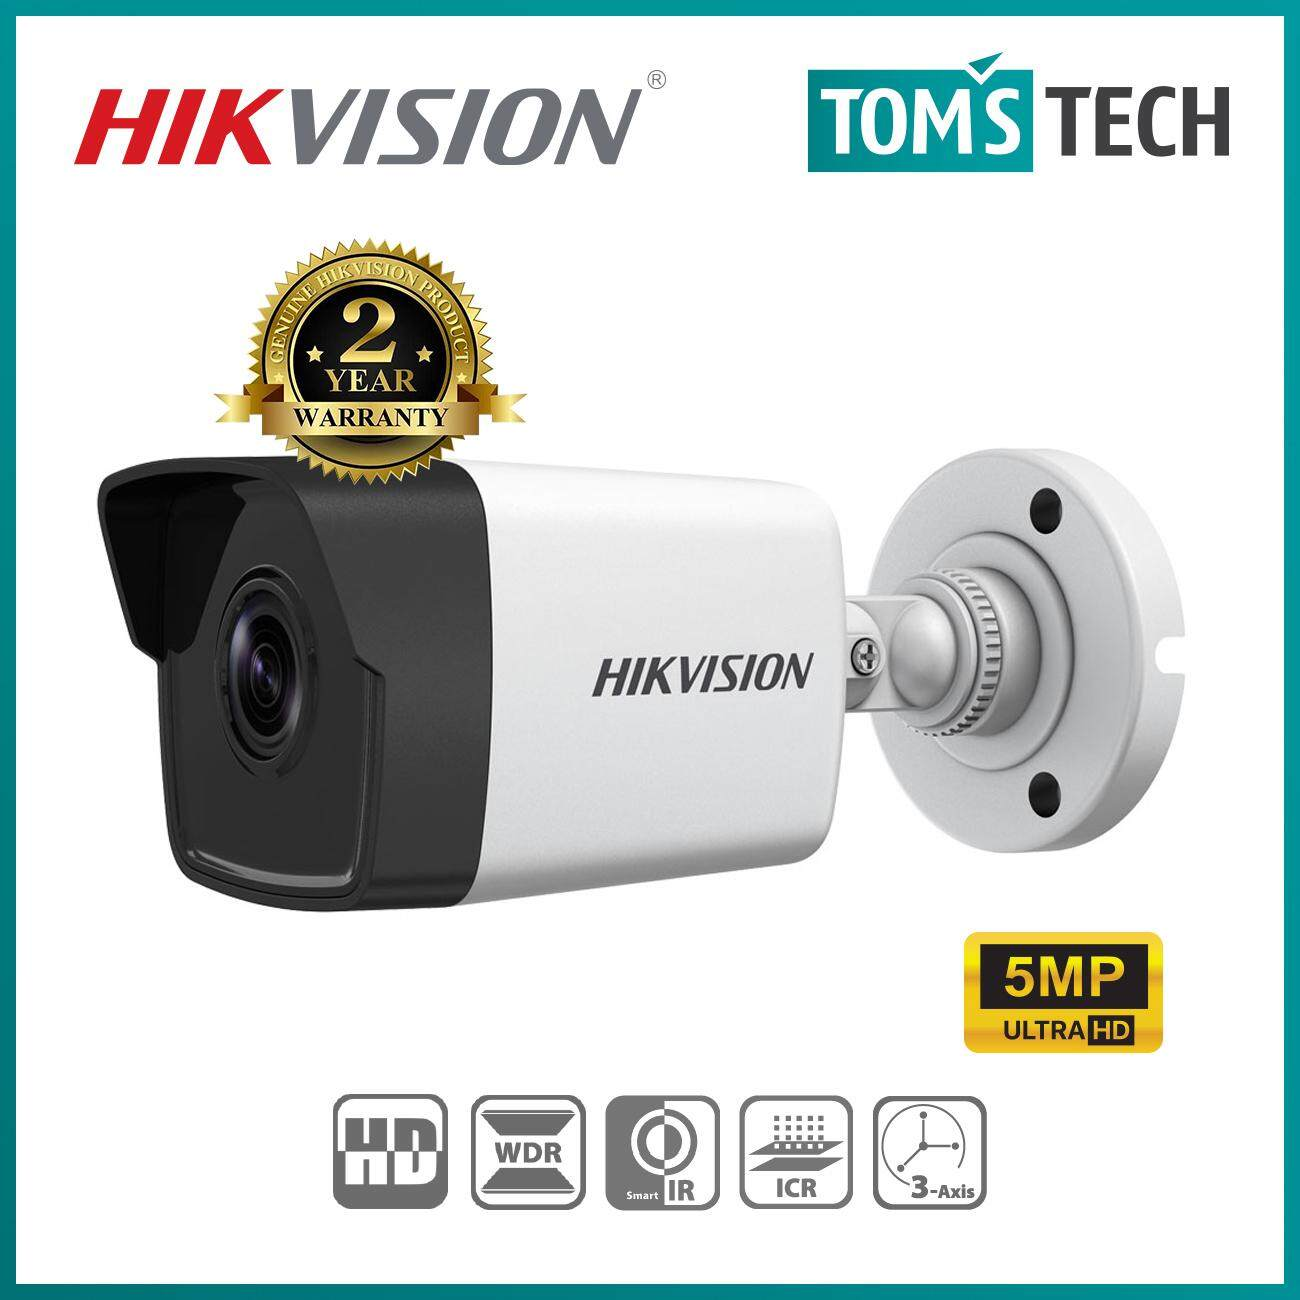 Hikvision DS-2CE16H0T-ITF 5MP Ultra HD 3 6mm EXIR Bullet CCTV Camera -  Tomstech